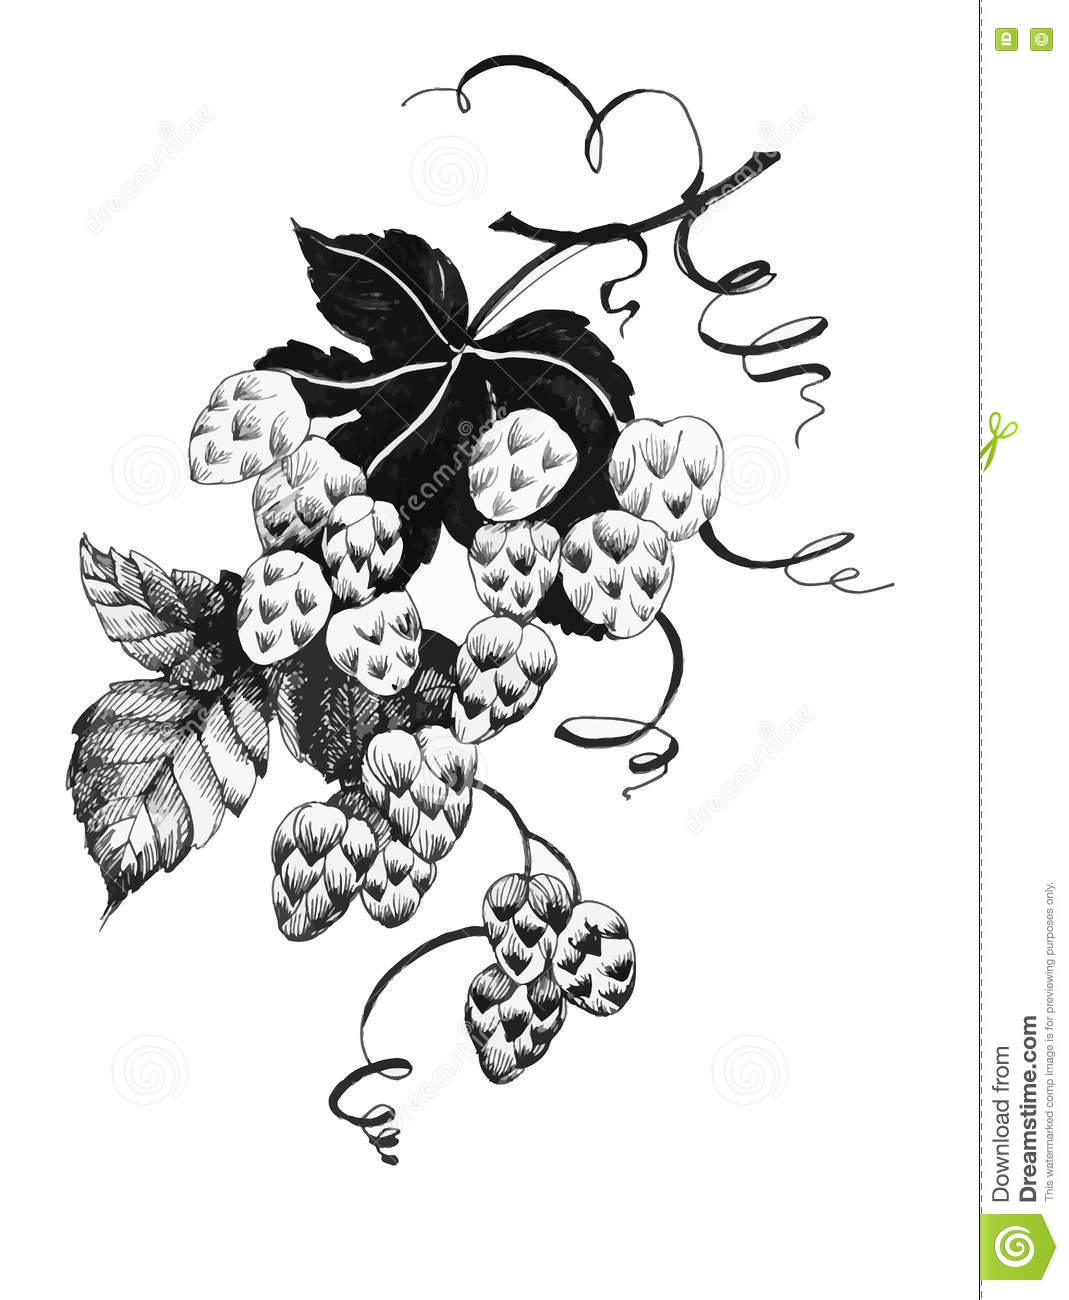 grapes harvest label black and white cartoon vector